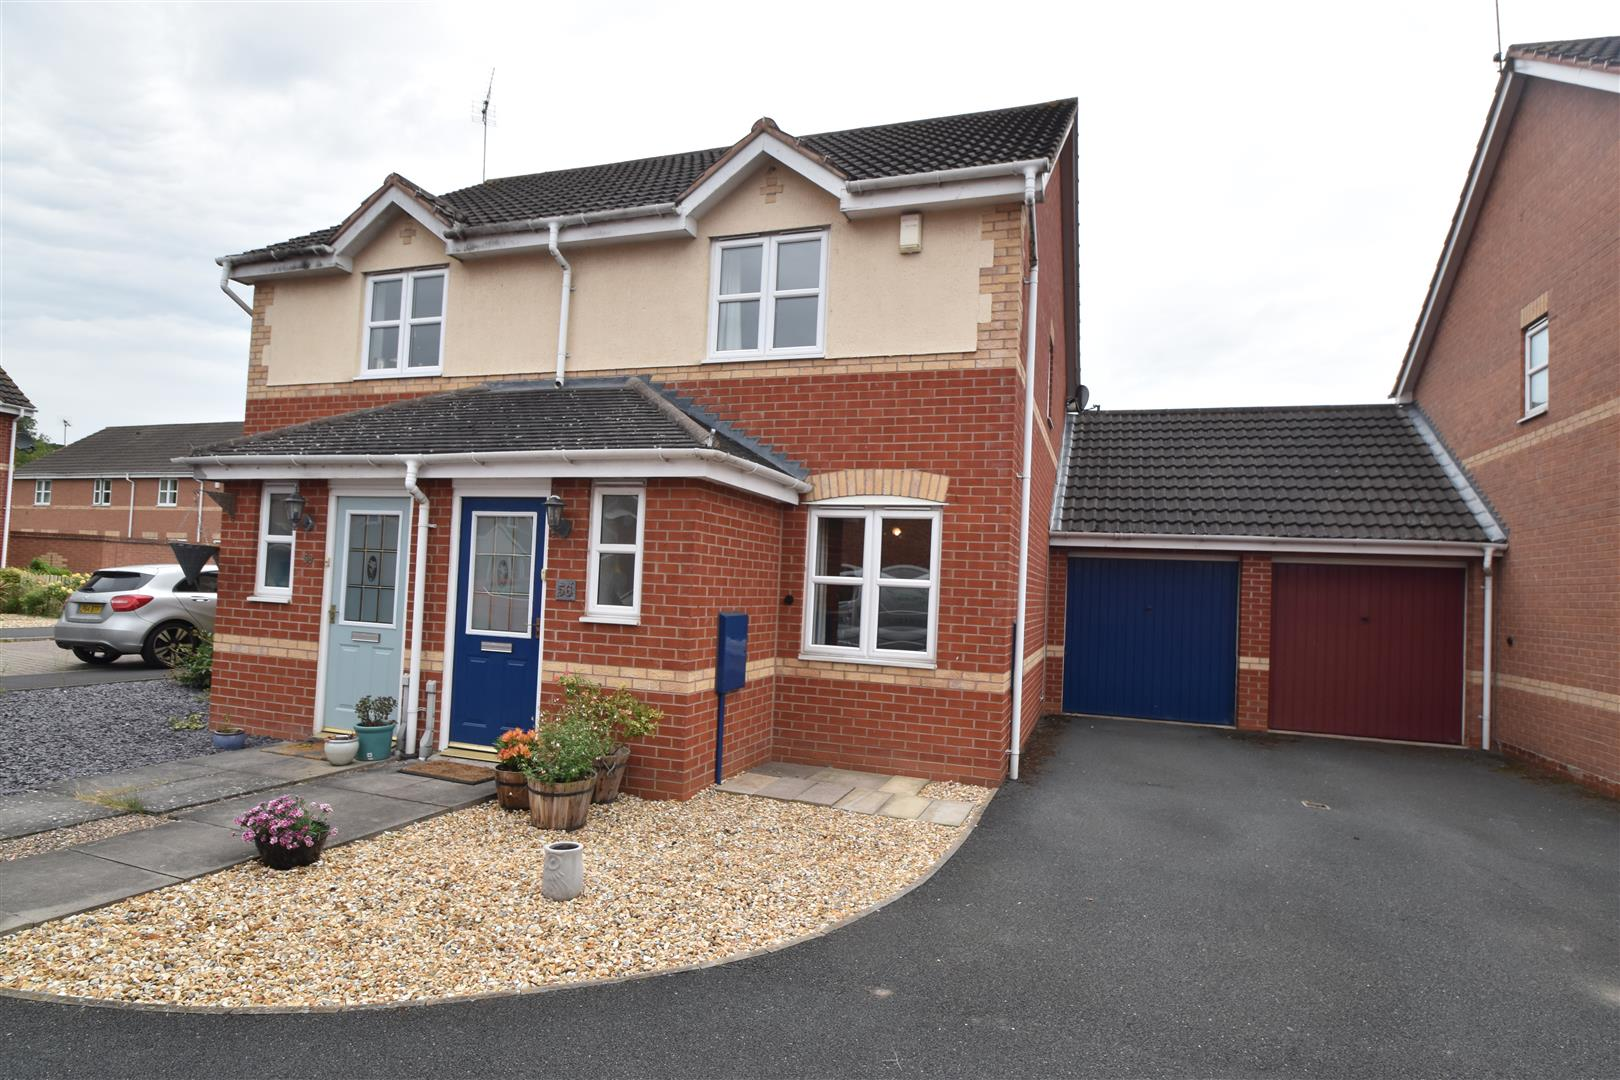 2 Bedrooms Semi Detached House for sale in Swan Drive, Droitwich